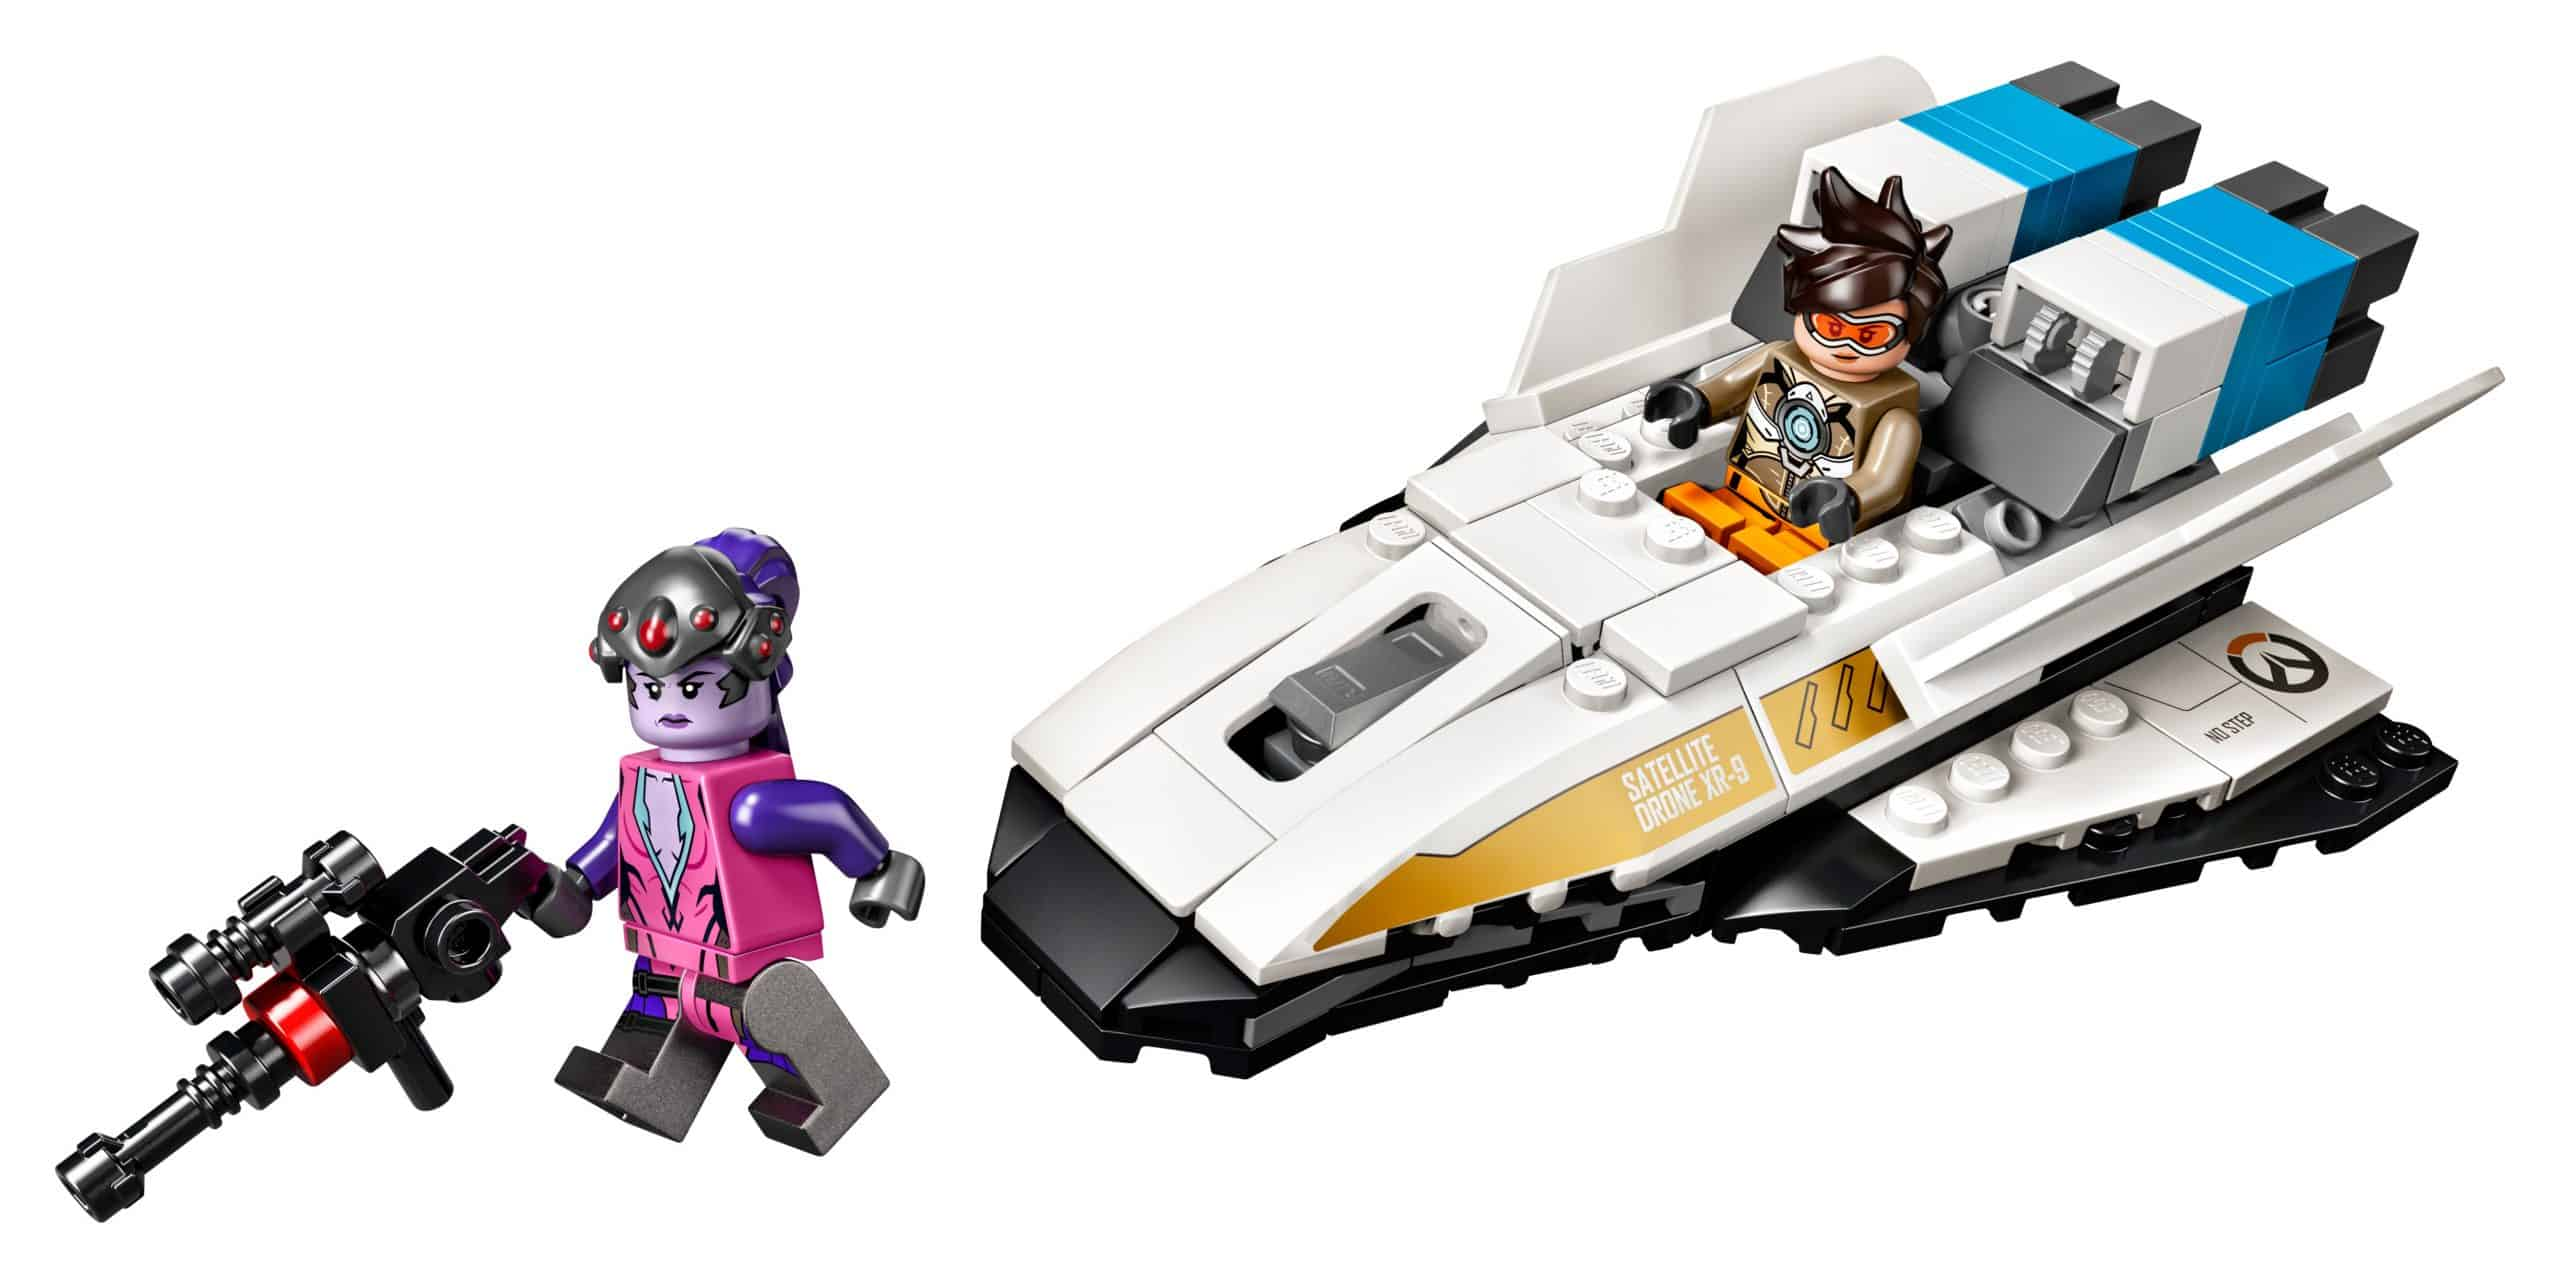 lego tracer vs widowmaker 75970 scaled